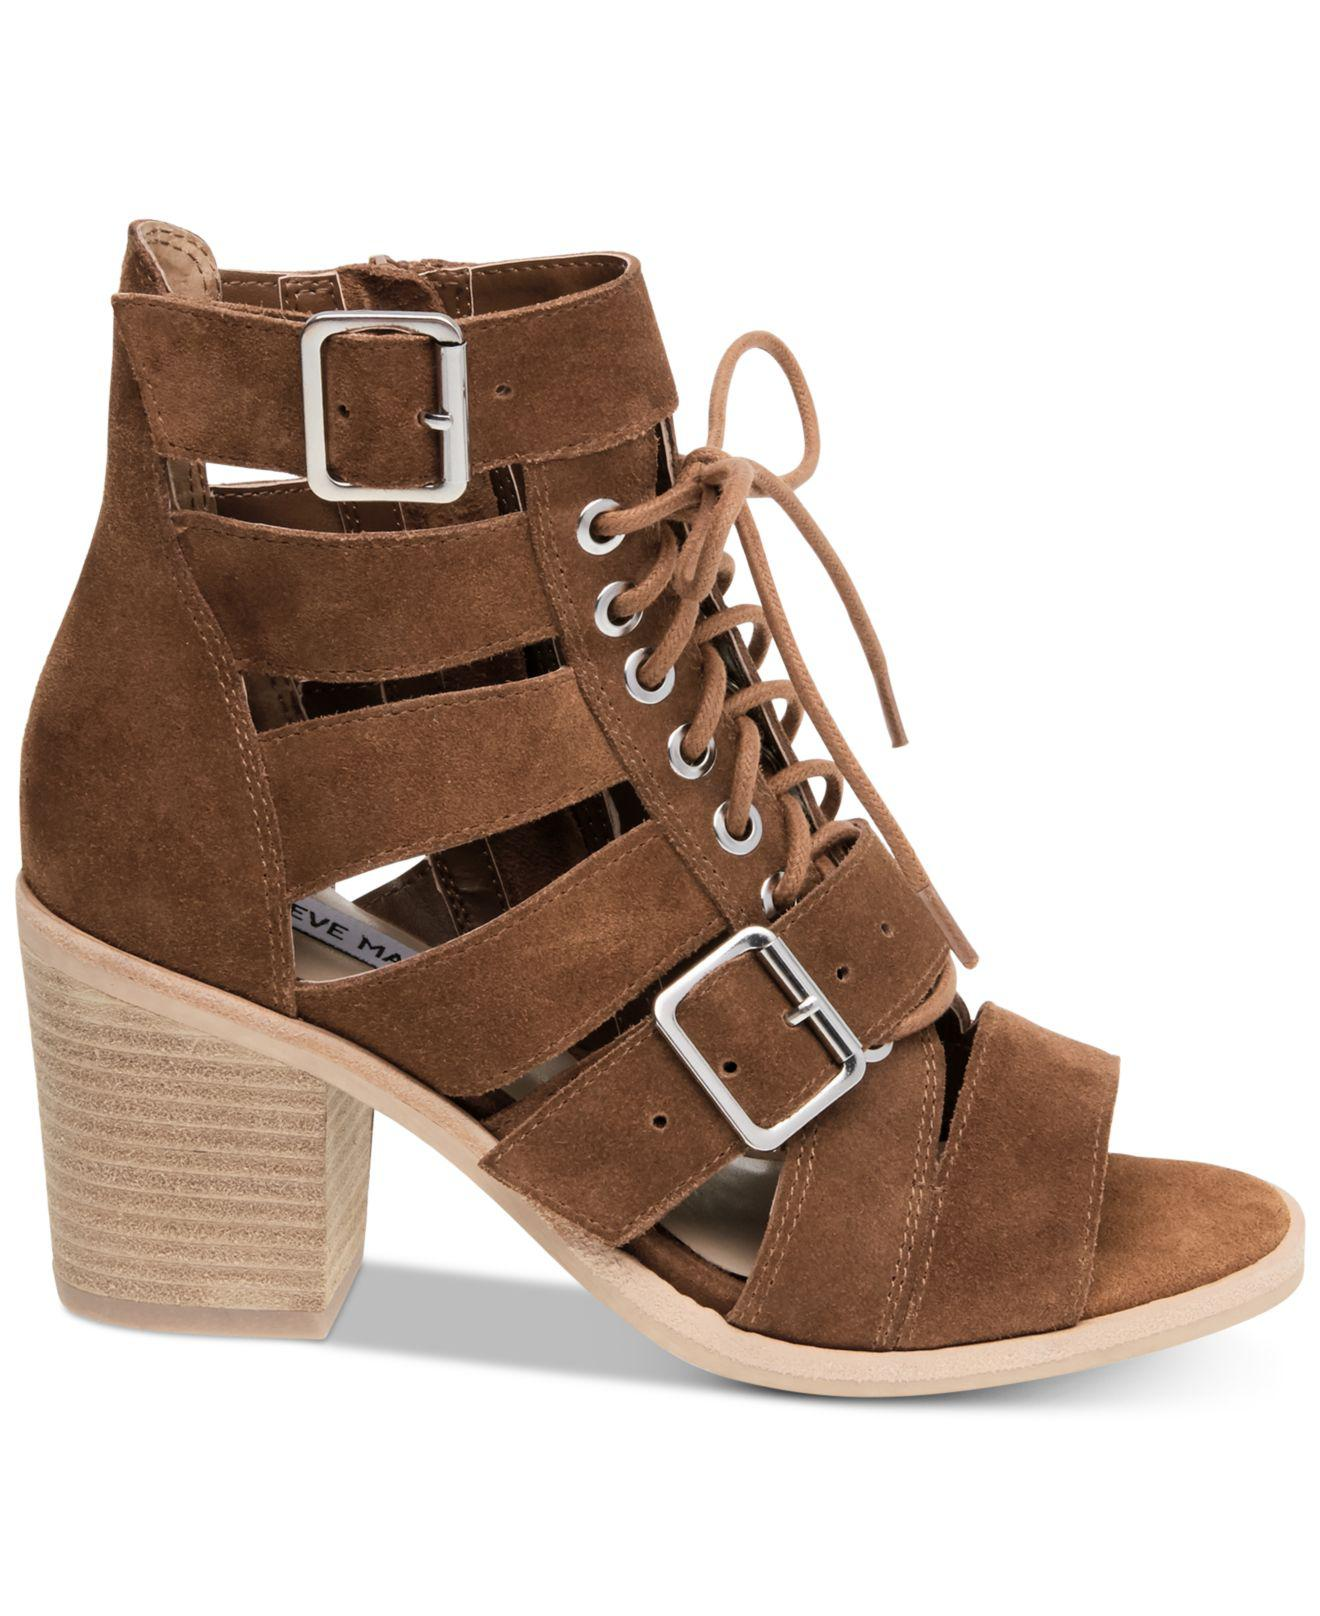 1f846eb351e0 Lyst - Steve Madden Jackson Lace-up Sandals in Brown